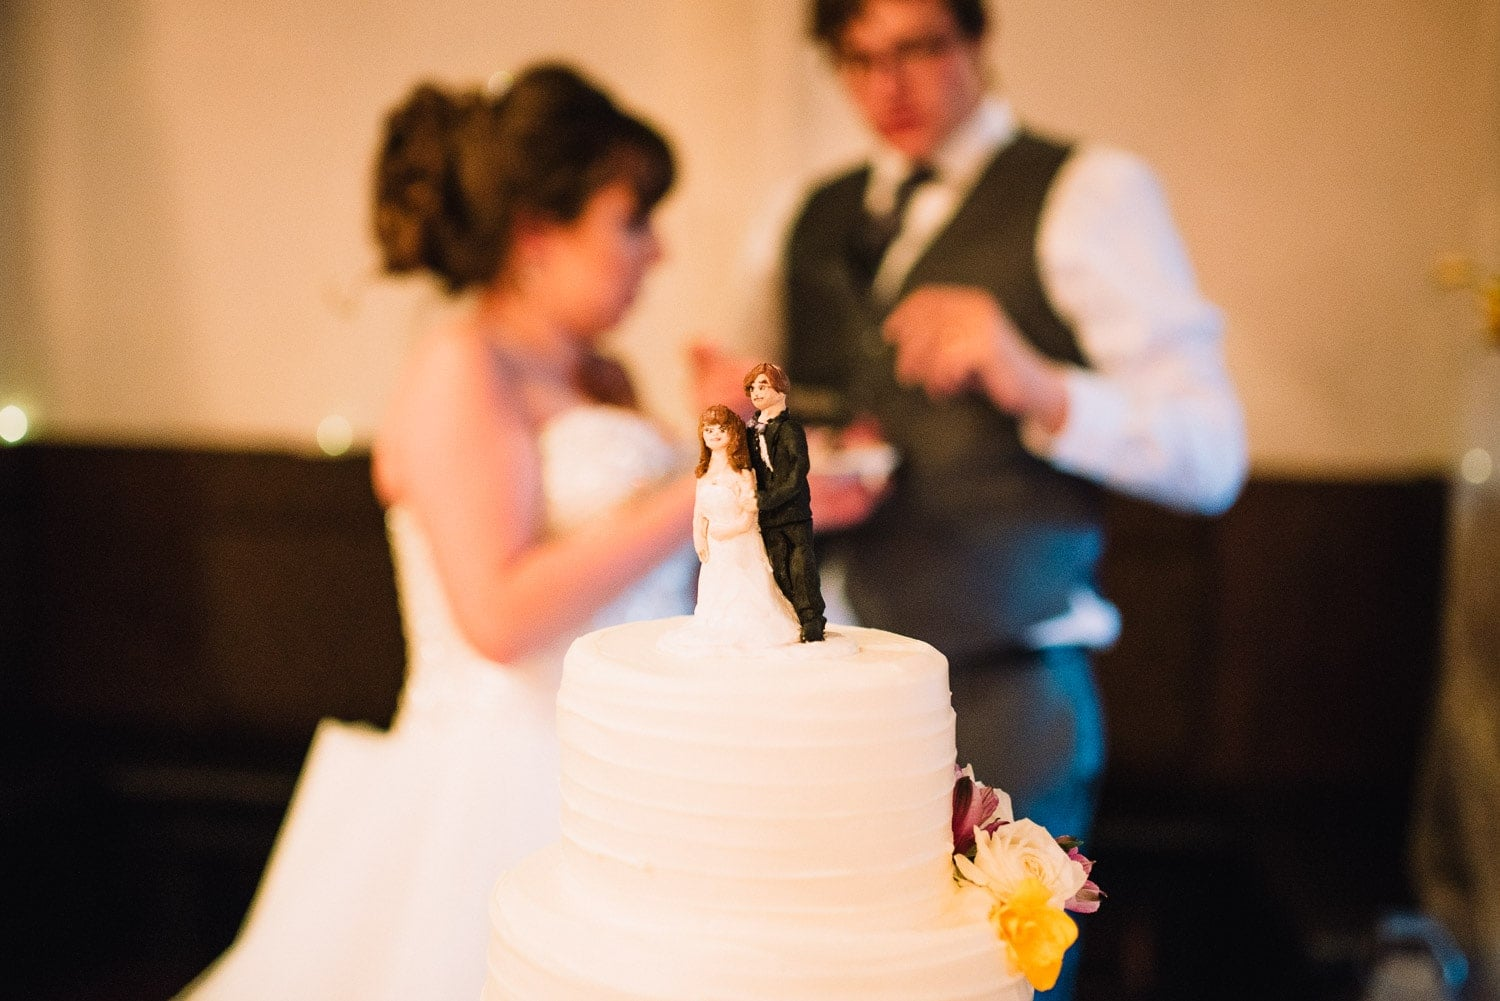 The bride and groom are blurred in the background. The wedding cake toppers are in focus in the foreground.